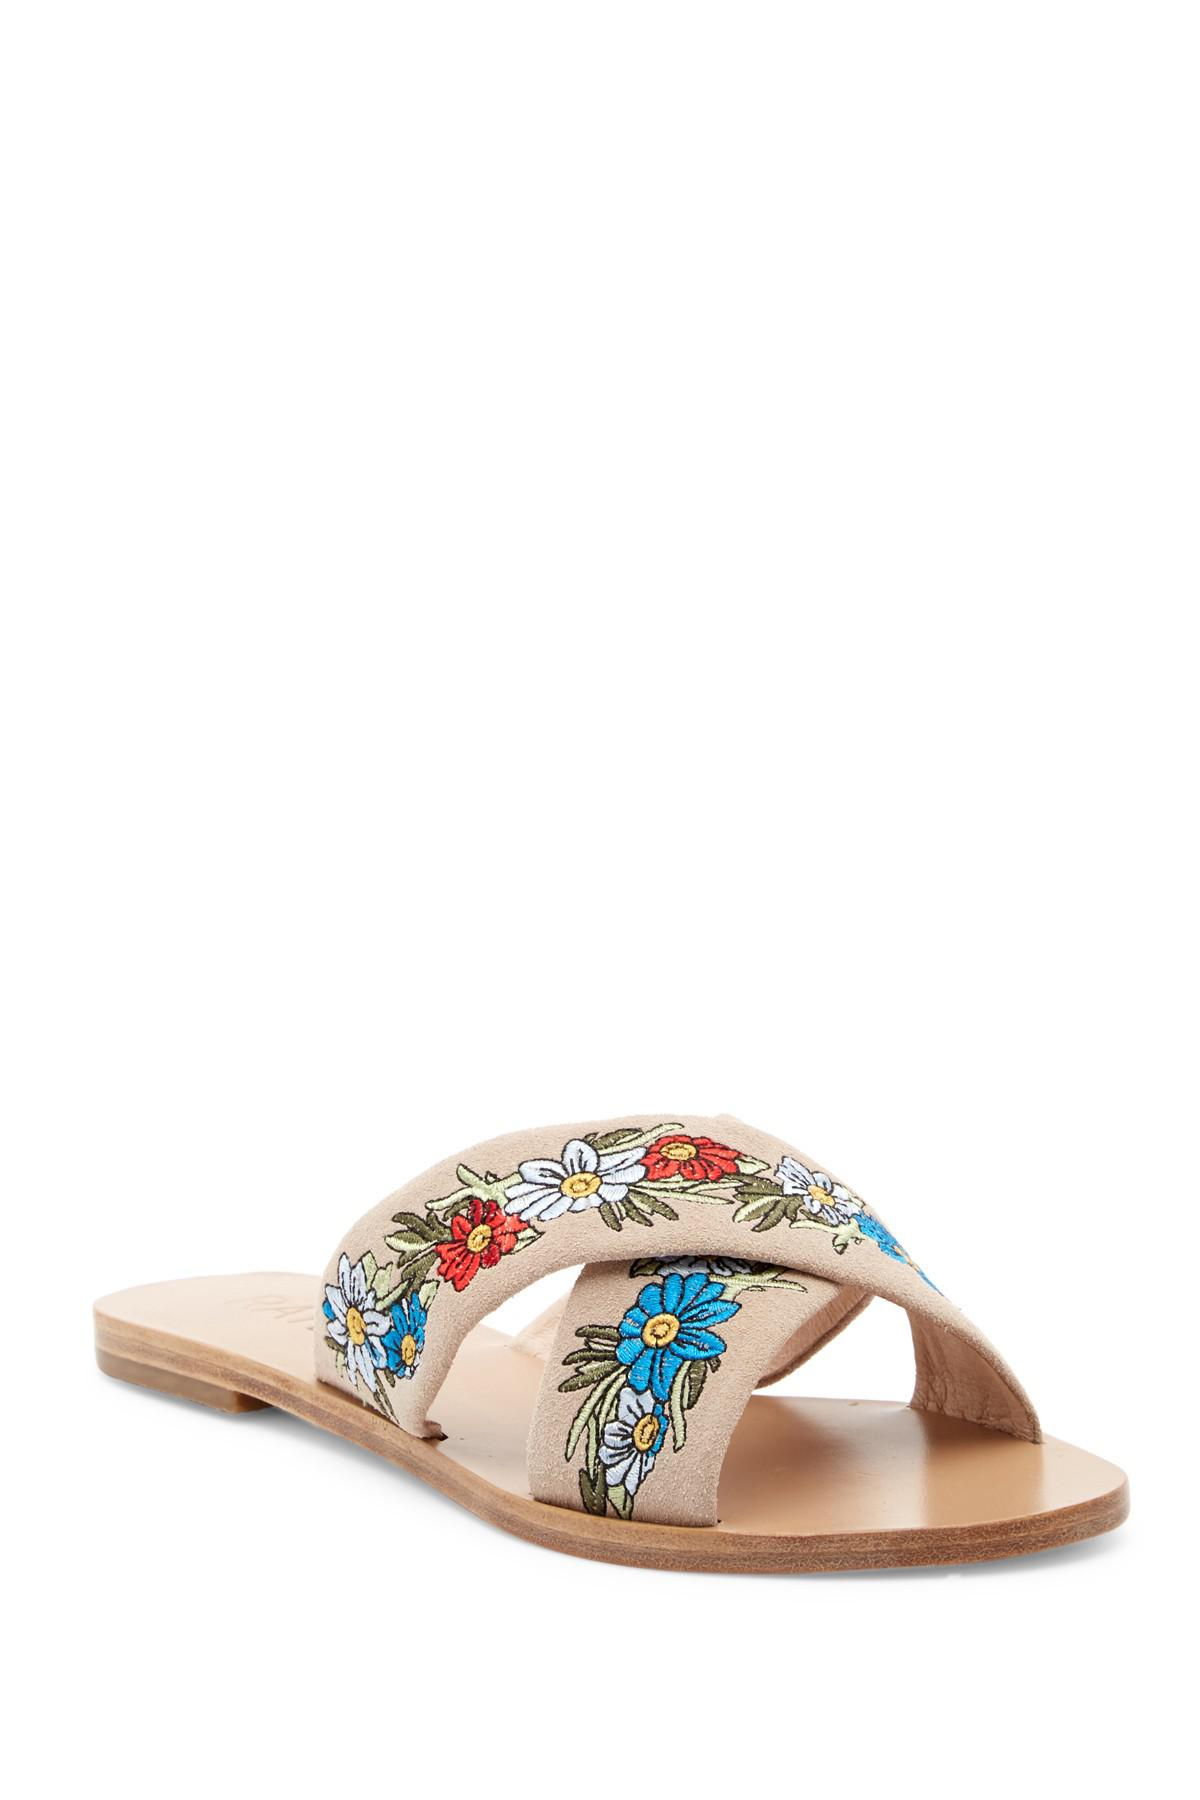 RAYE Sully Embroidered Slide Sandal 4vufsmb